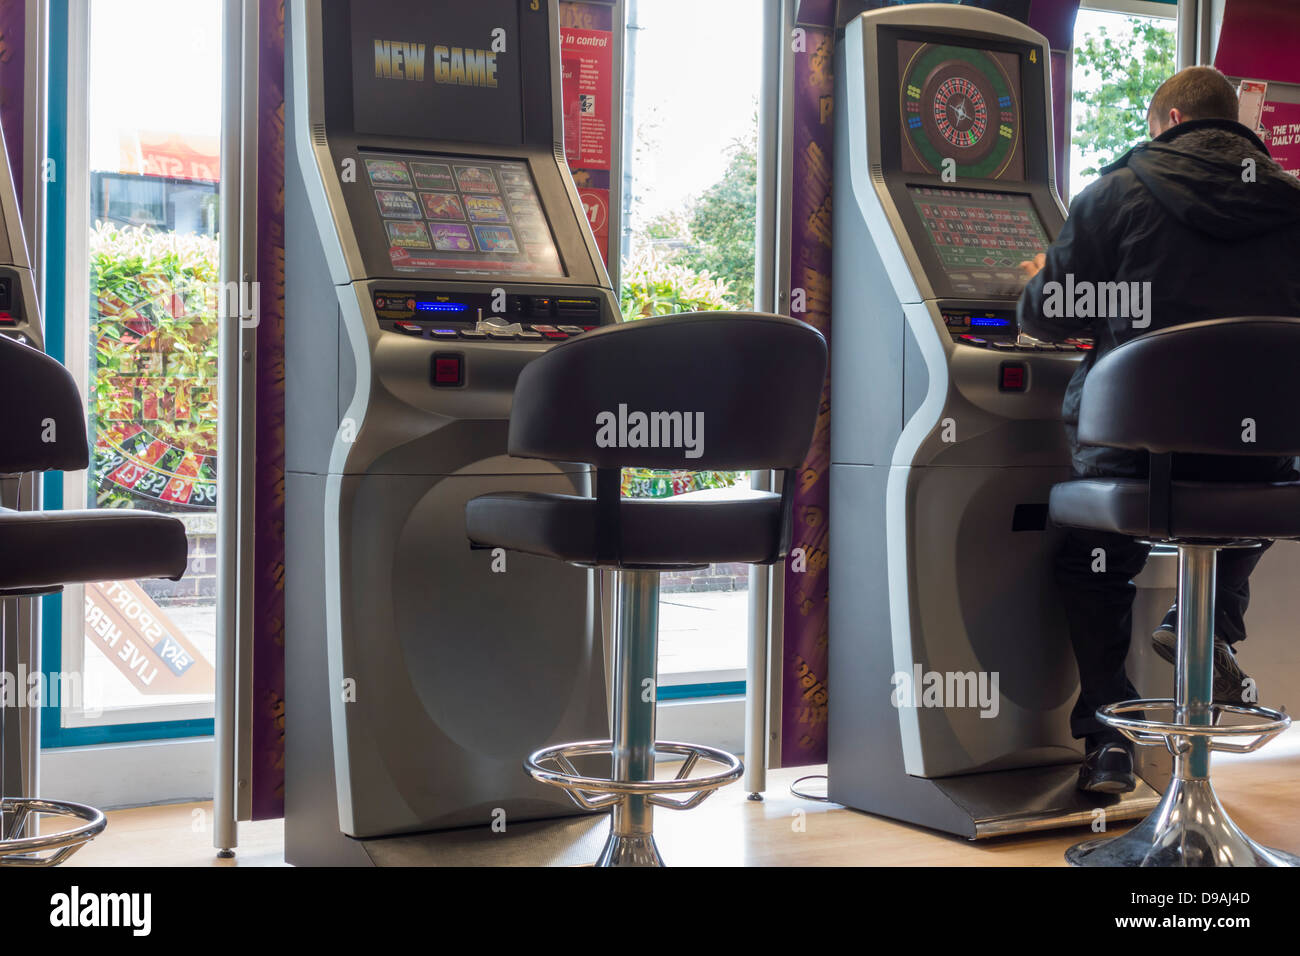 Roulette machines in Ladbrokes Bookmakers, England, UK Stock Photo